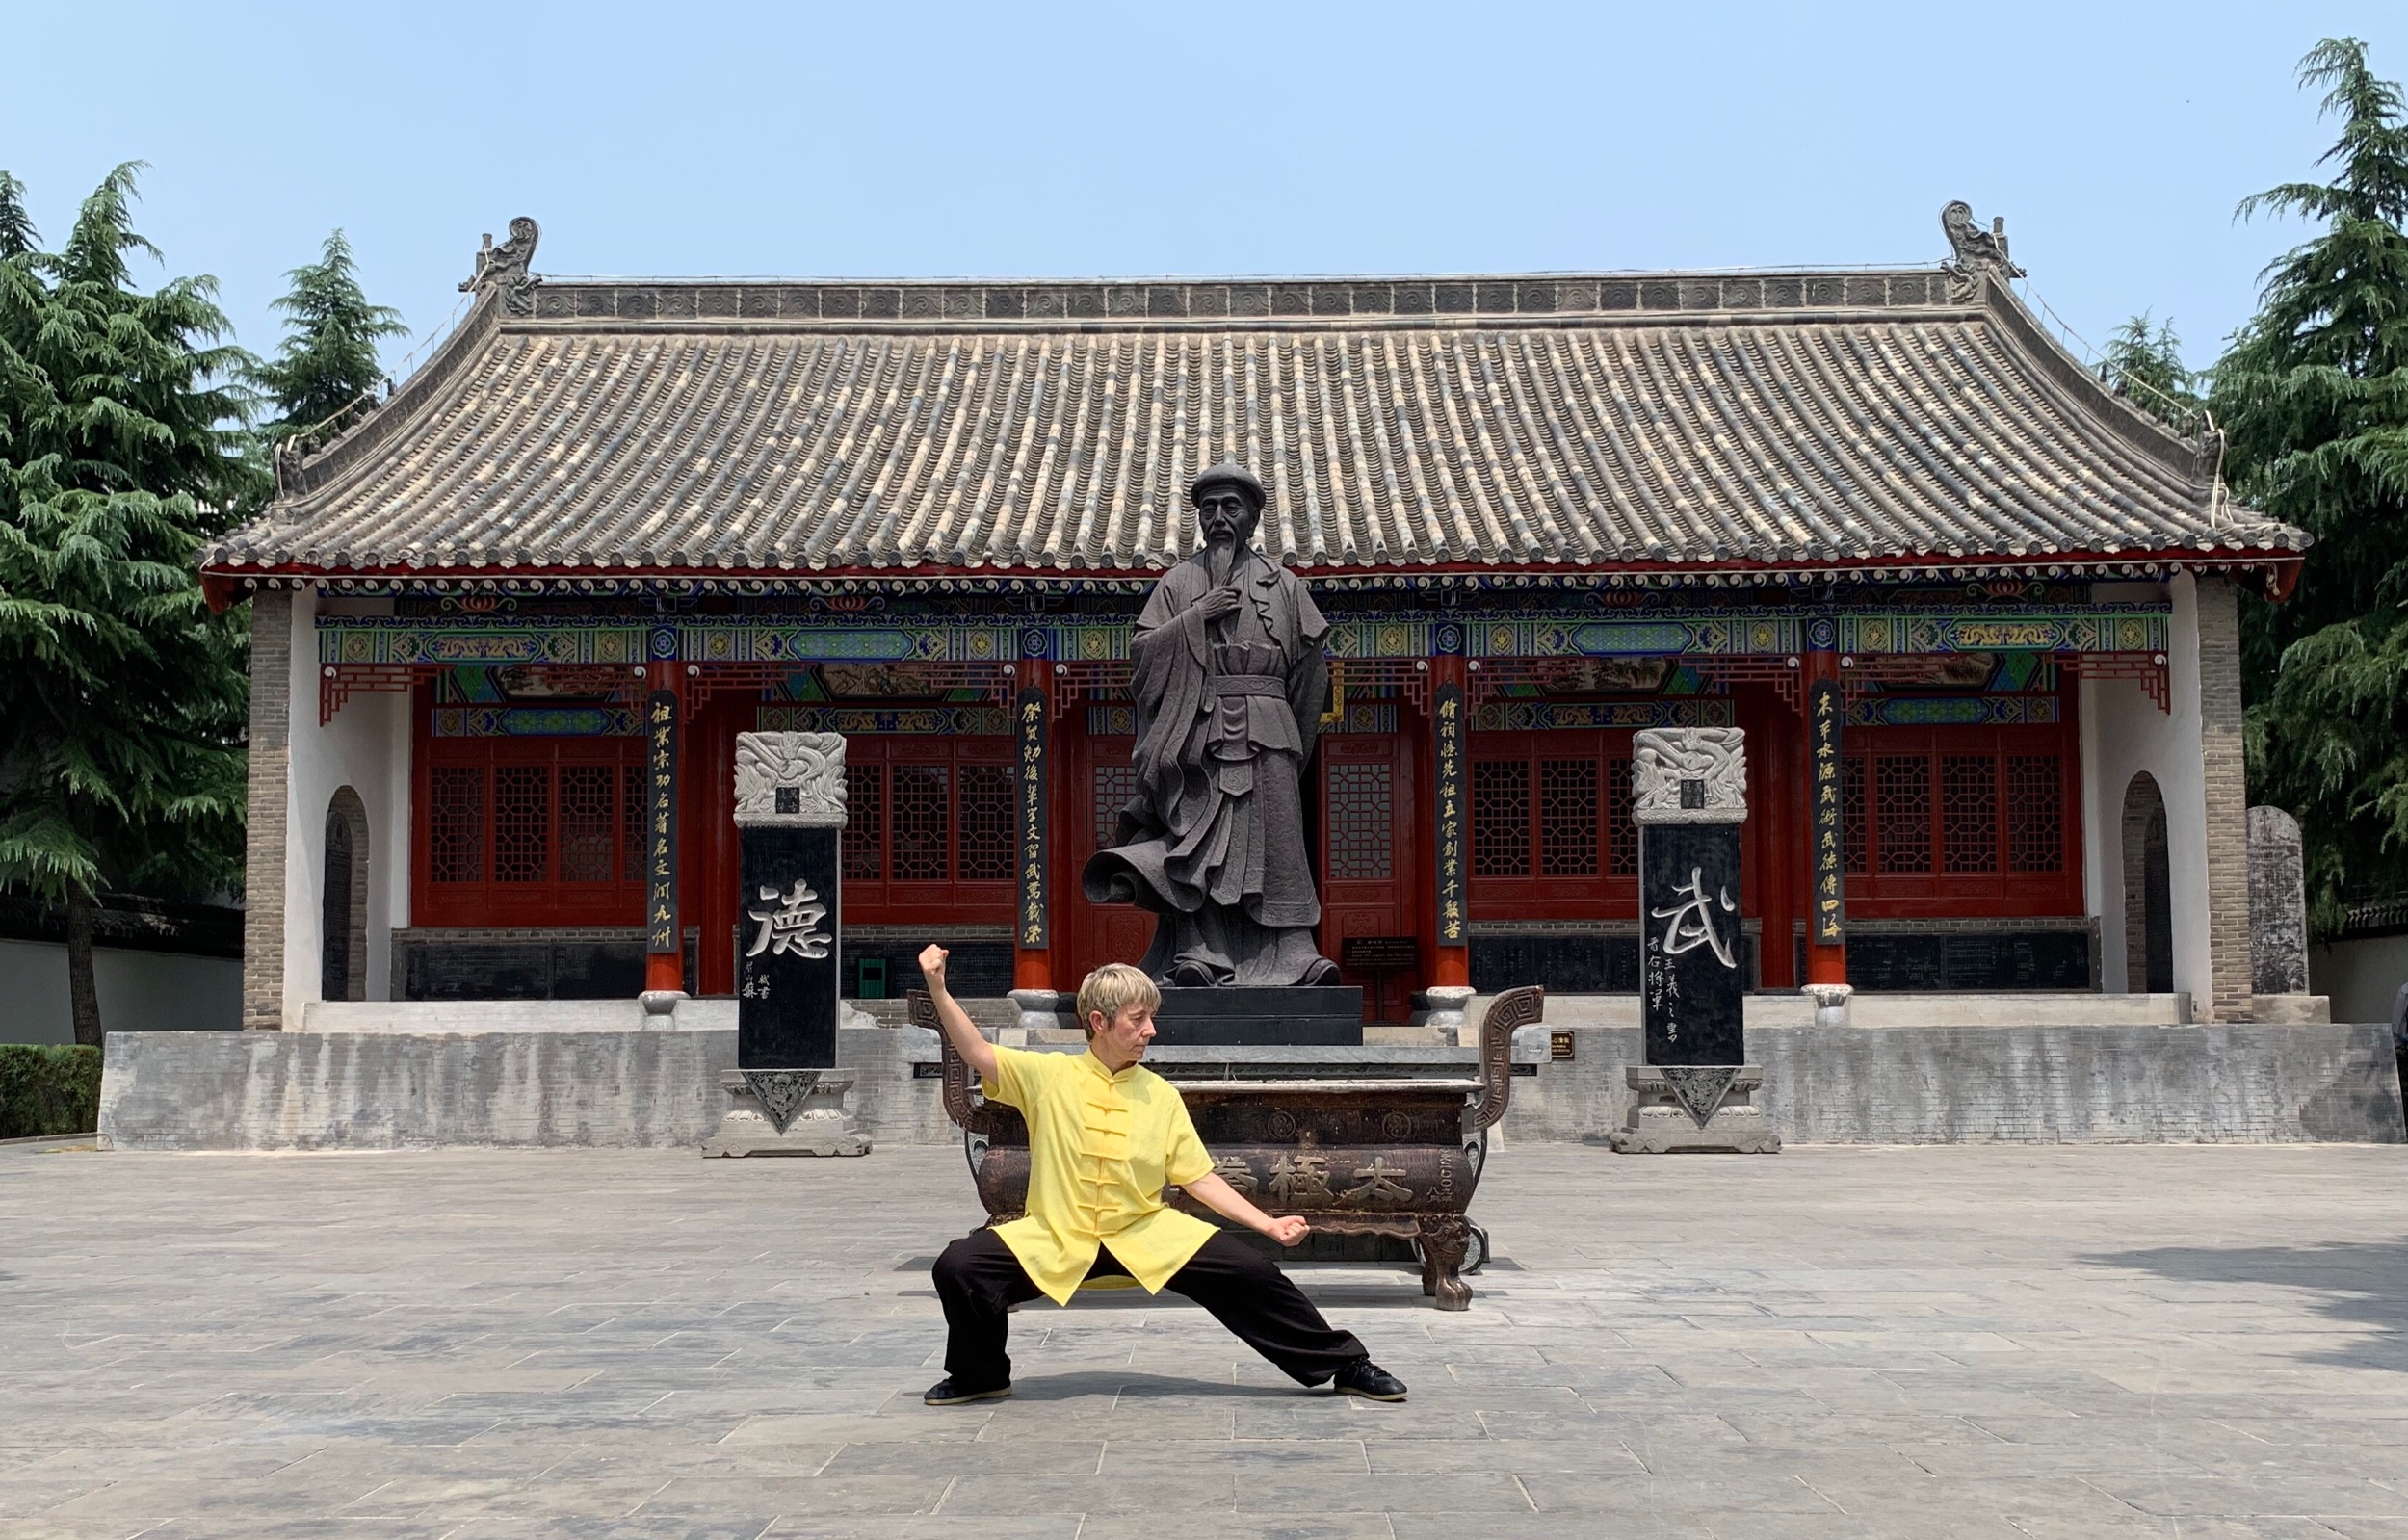 Kimsights Blog - Embrace the Moon - A Seattle Tai Chi and